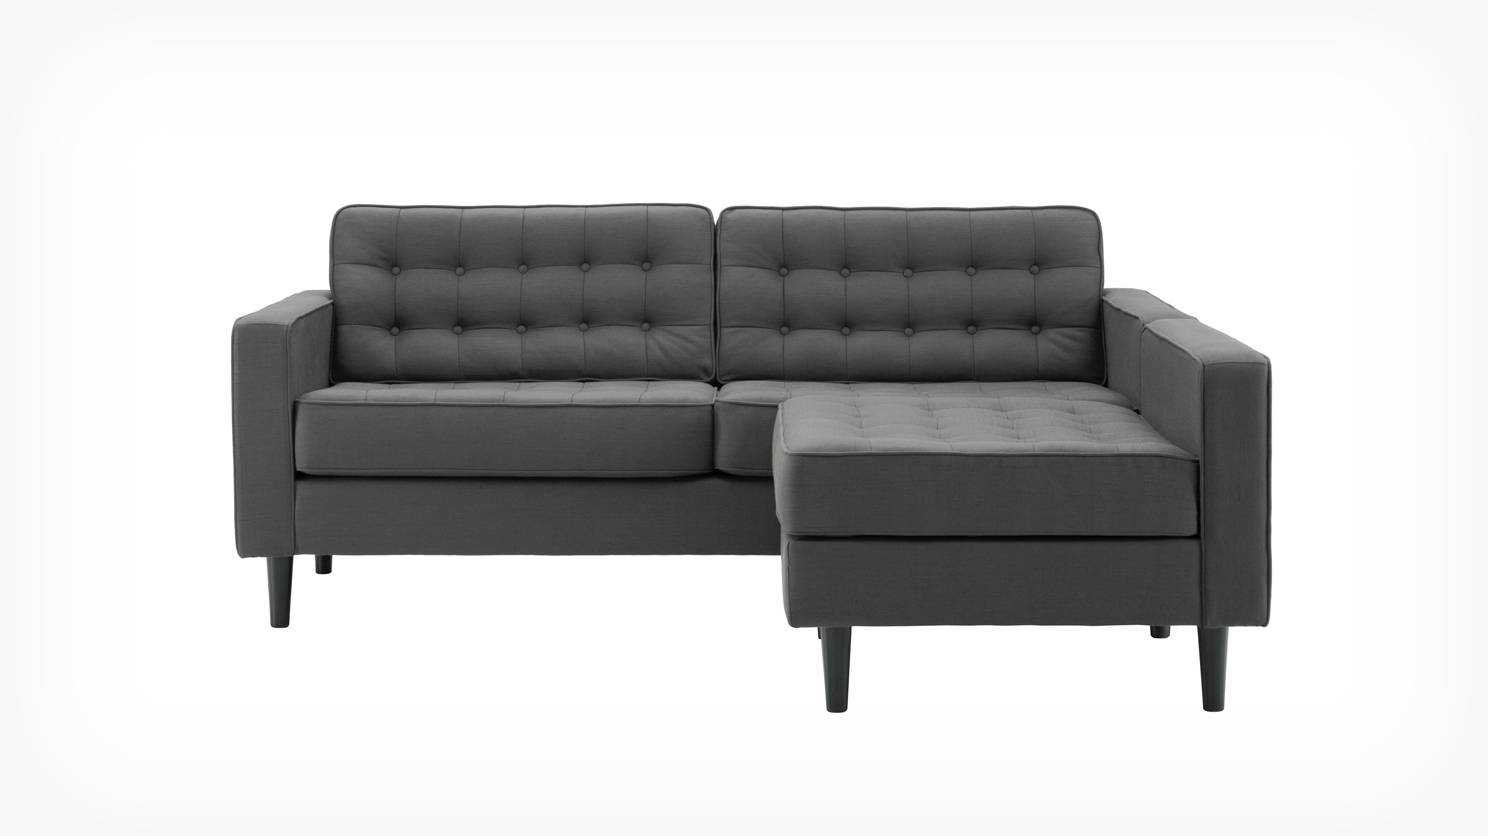 Eq3 | Reverie Apartment 2 Piece Sectional Sofa With Chaise – Fabric Within Sectional Sofa With 2 Chaises (View 20 of 30)